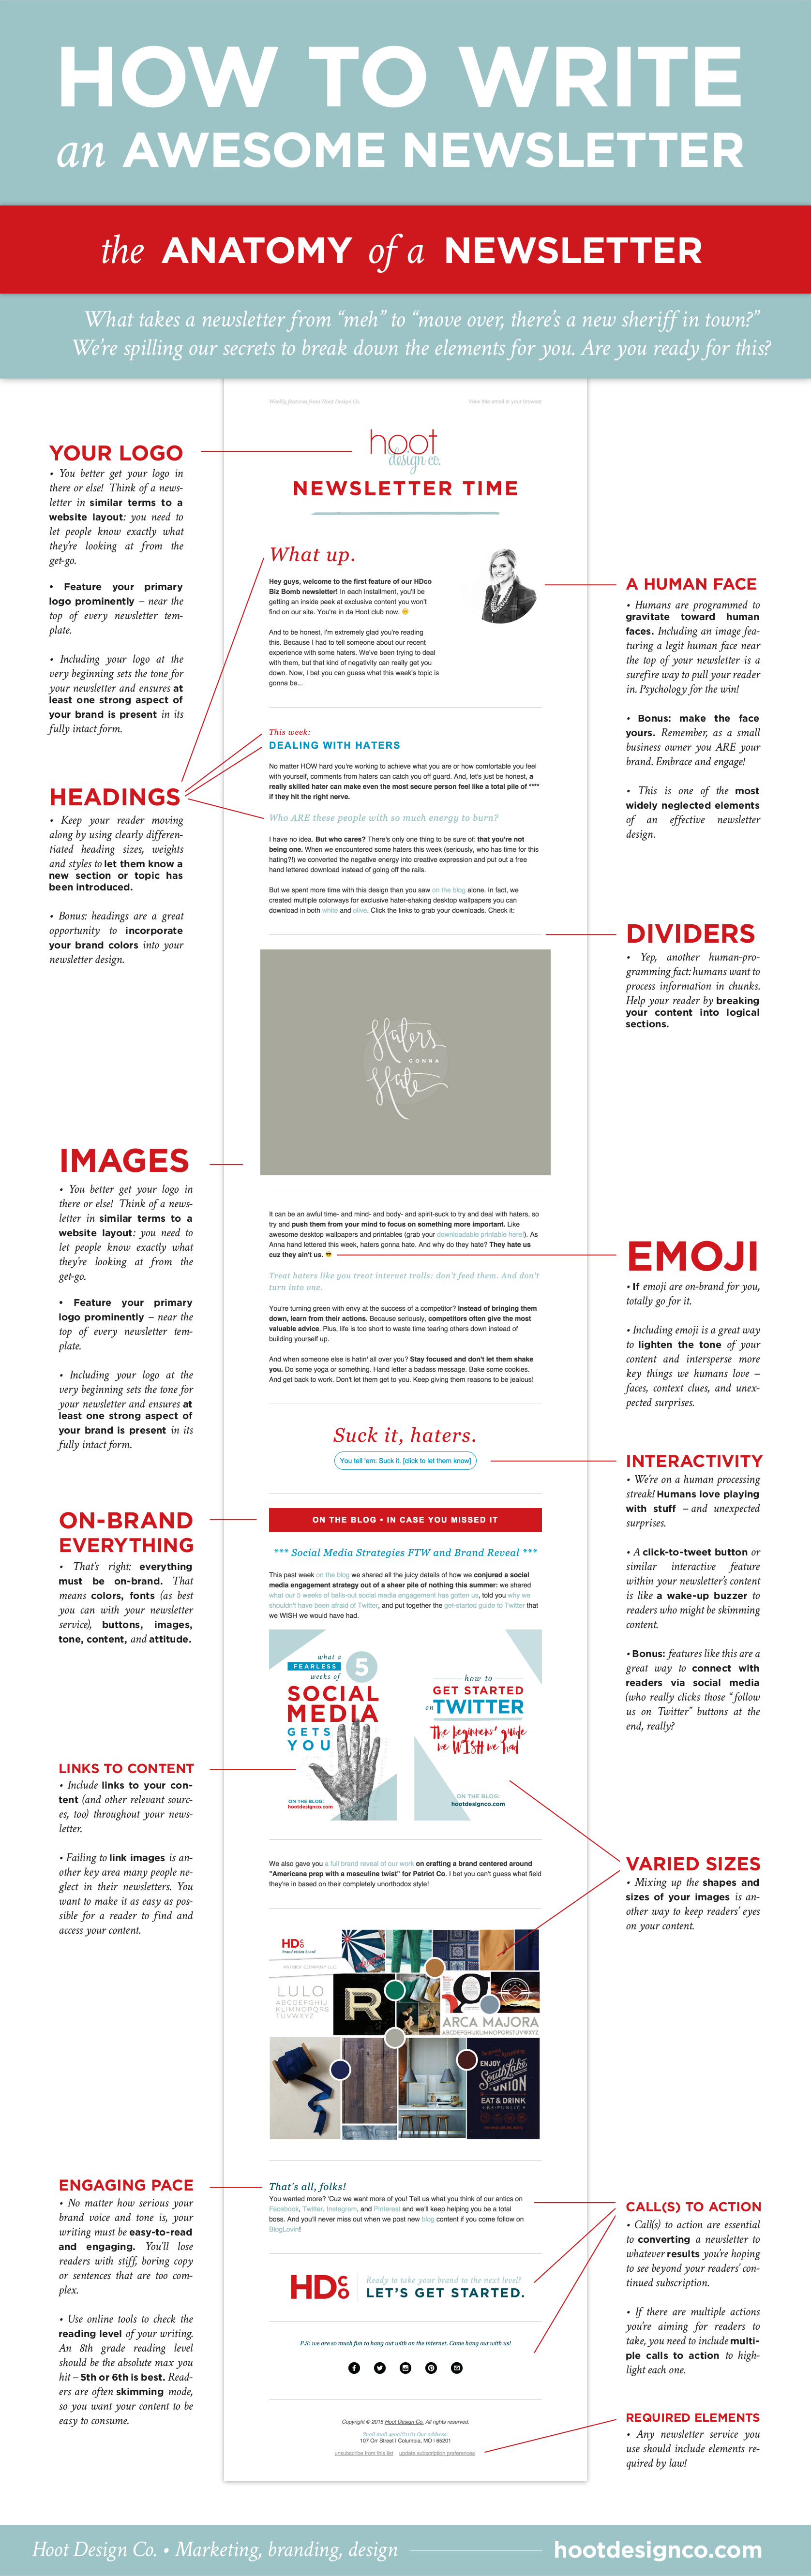 These are the key elements to writing a good newsletter. Keep them in mind when you go to write your next one! | Hoot Design Co.